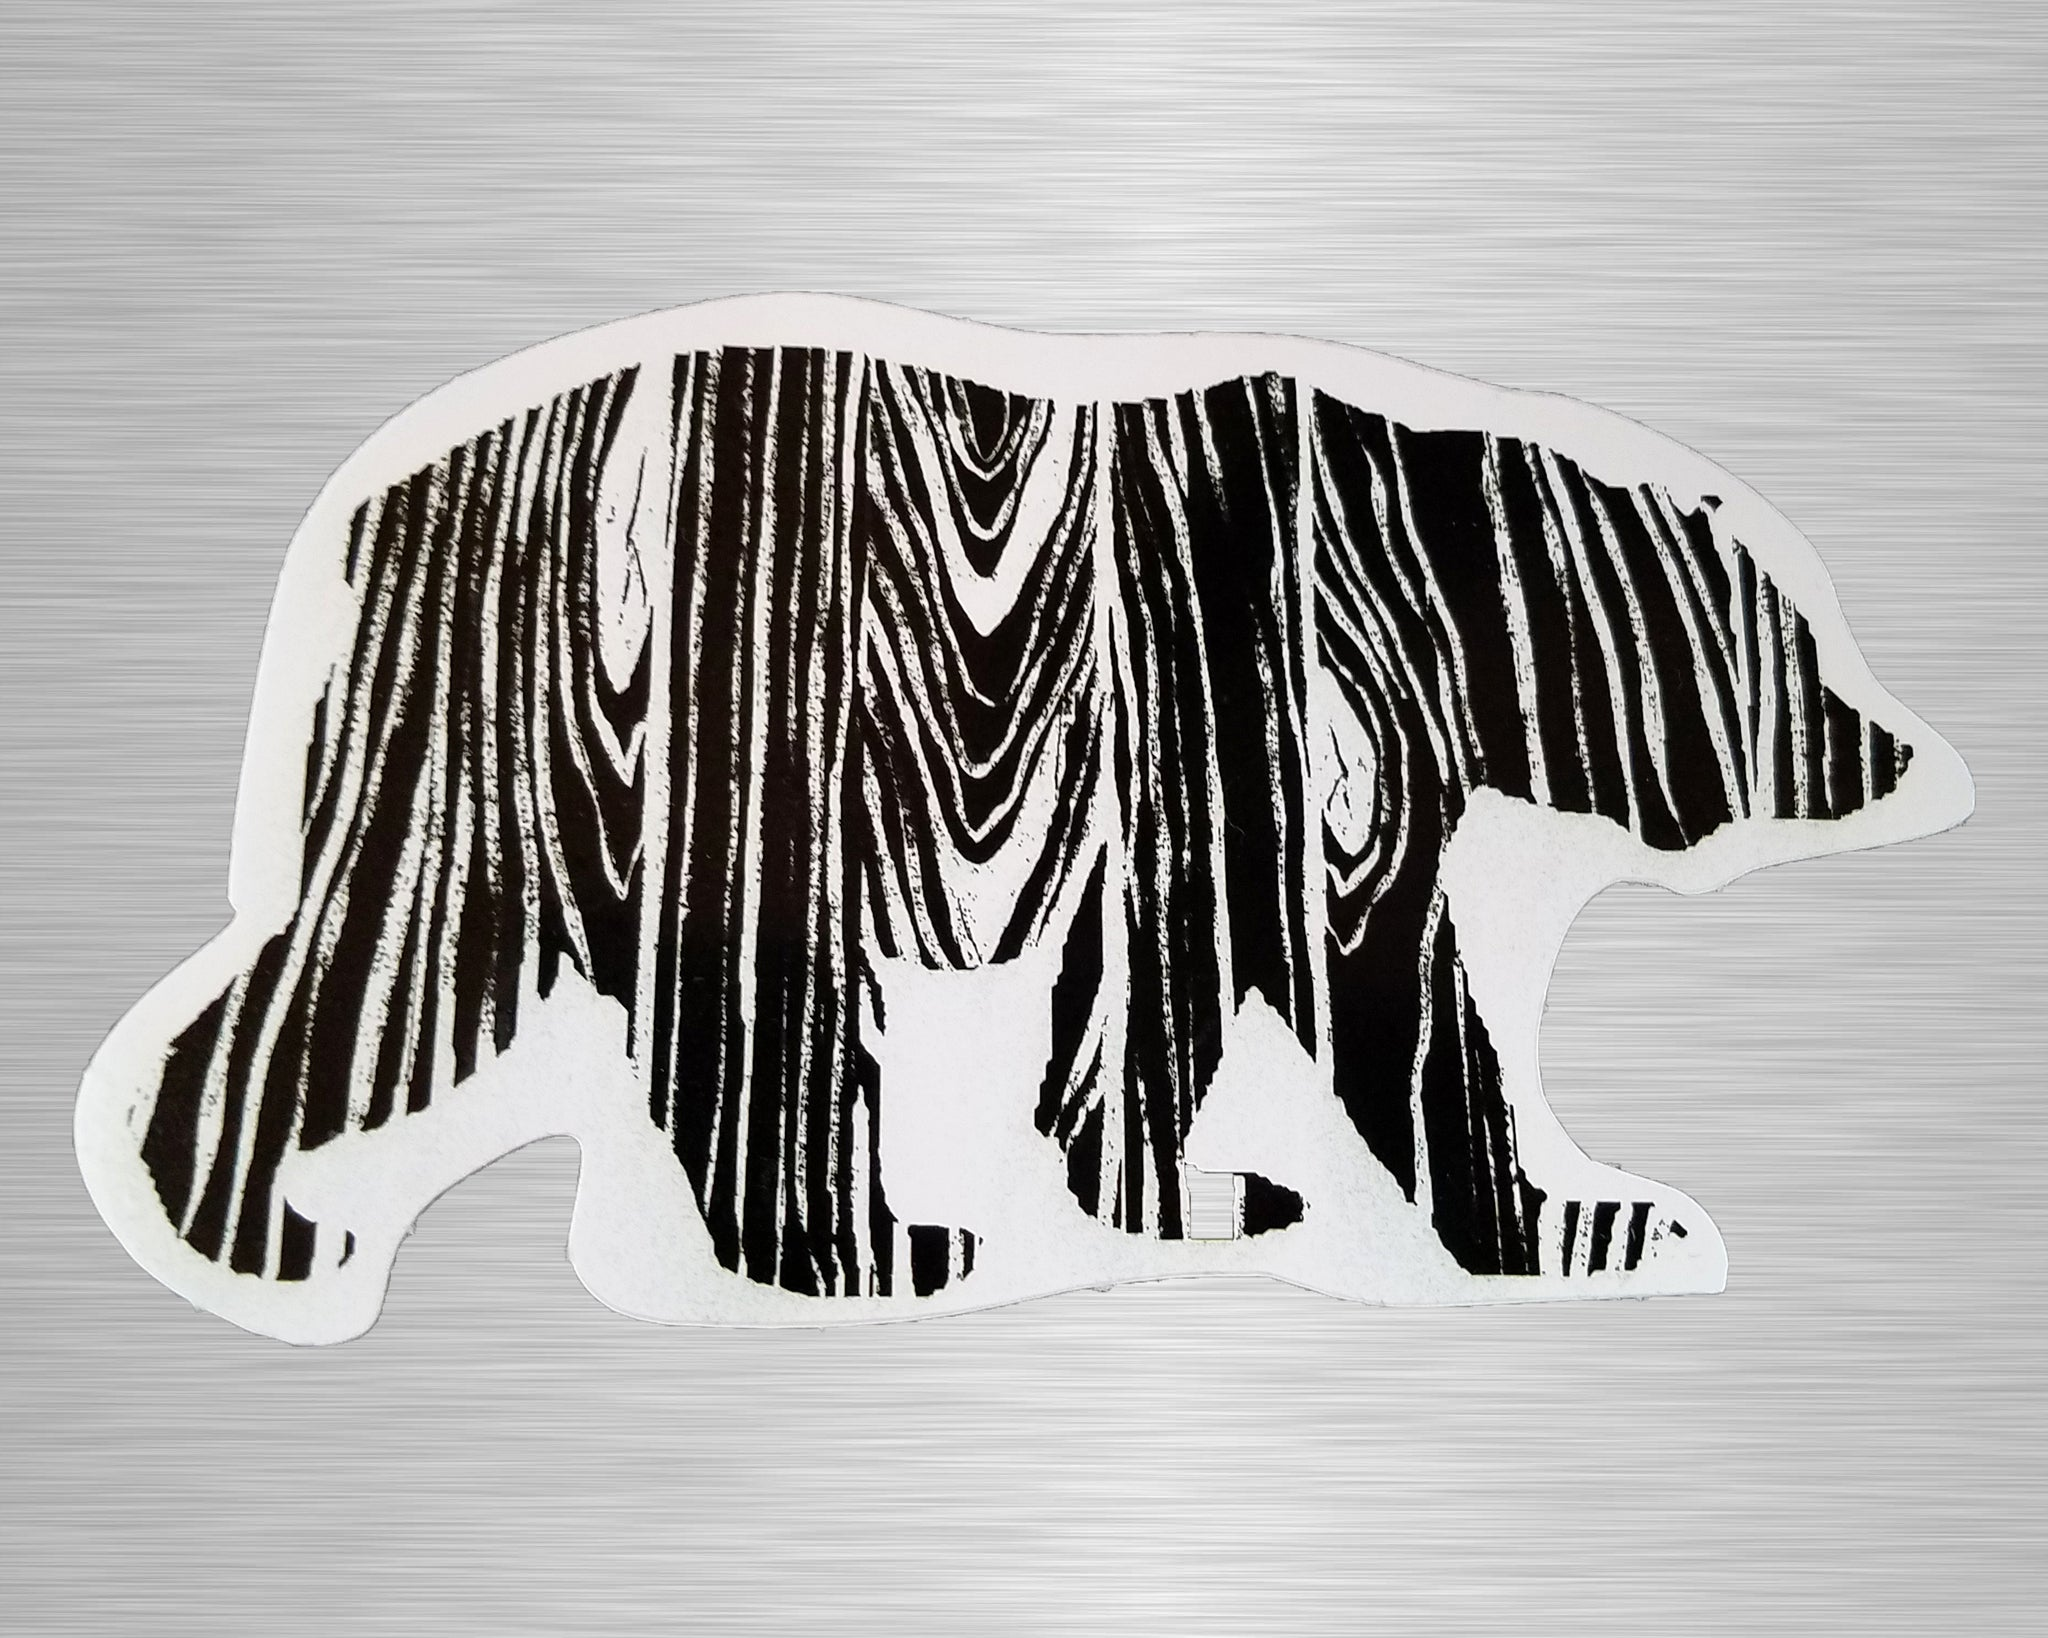 Wood Grain Bear Vinyl Sticker/Decal